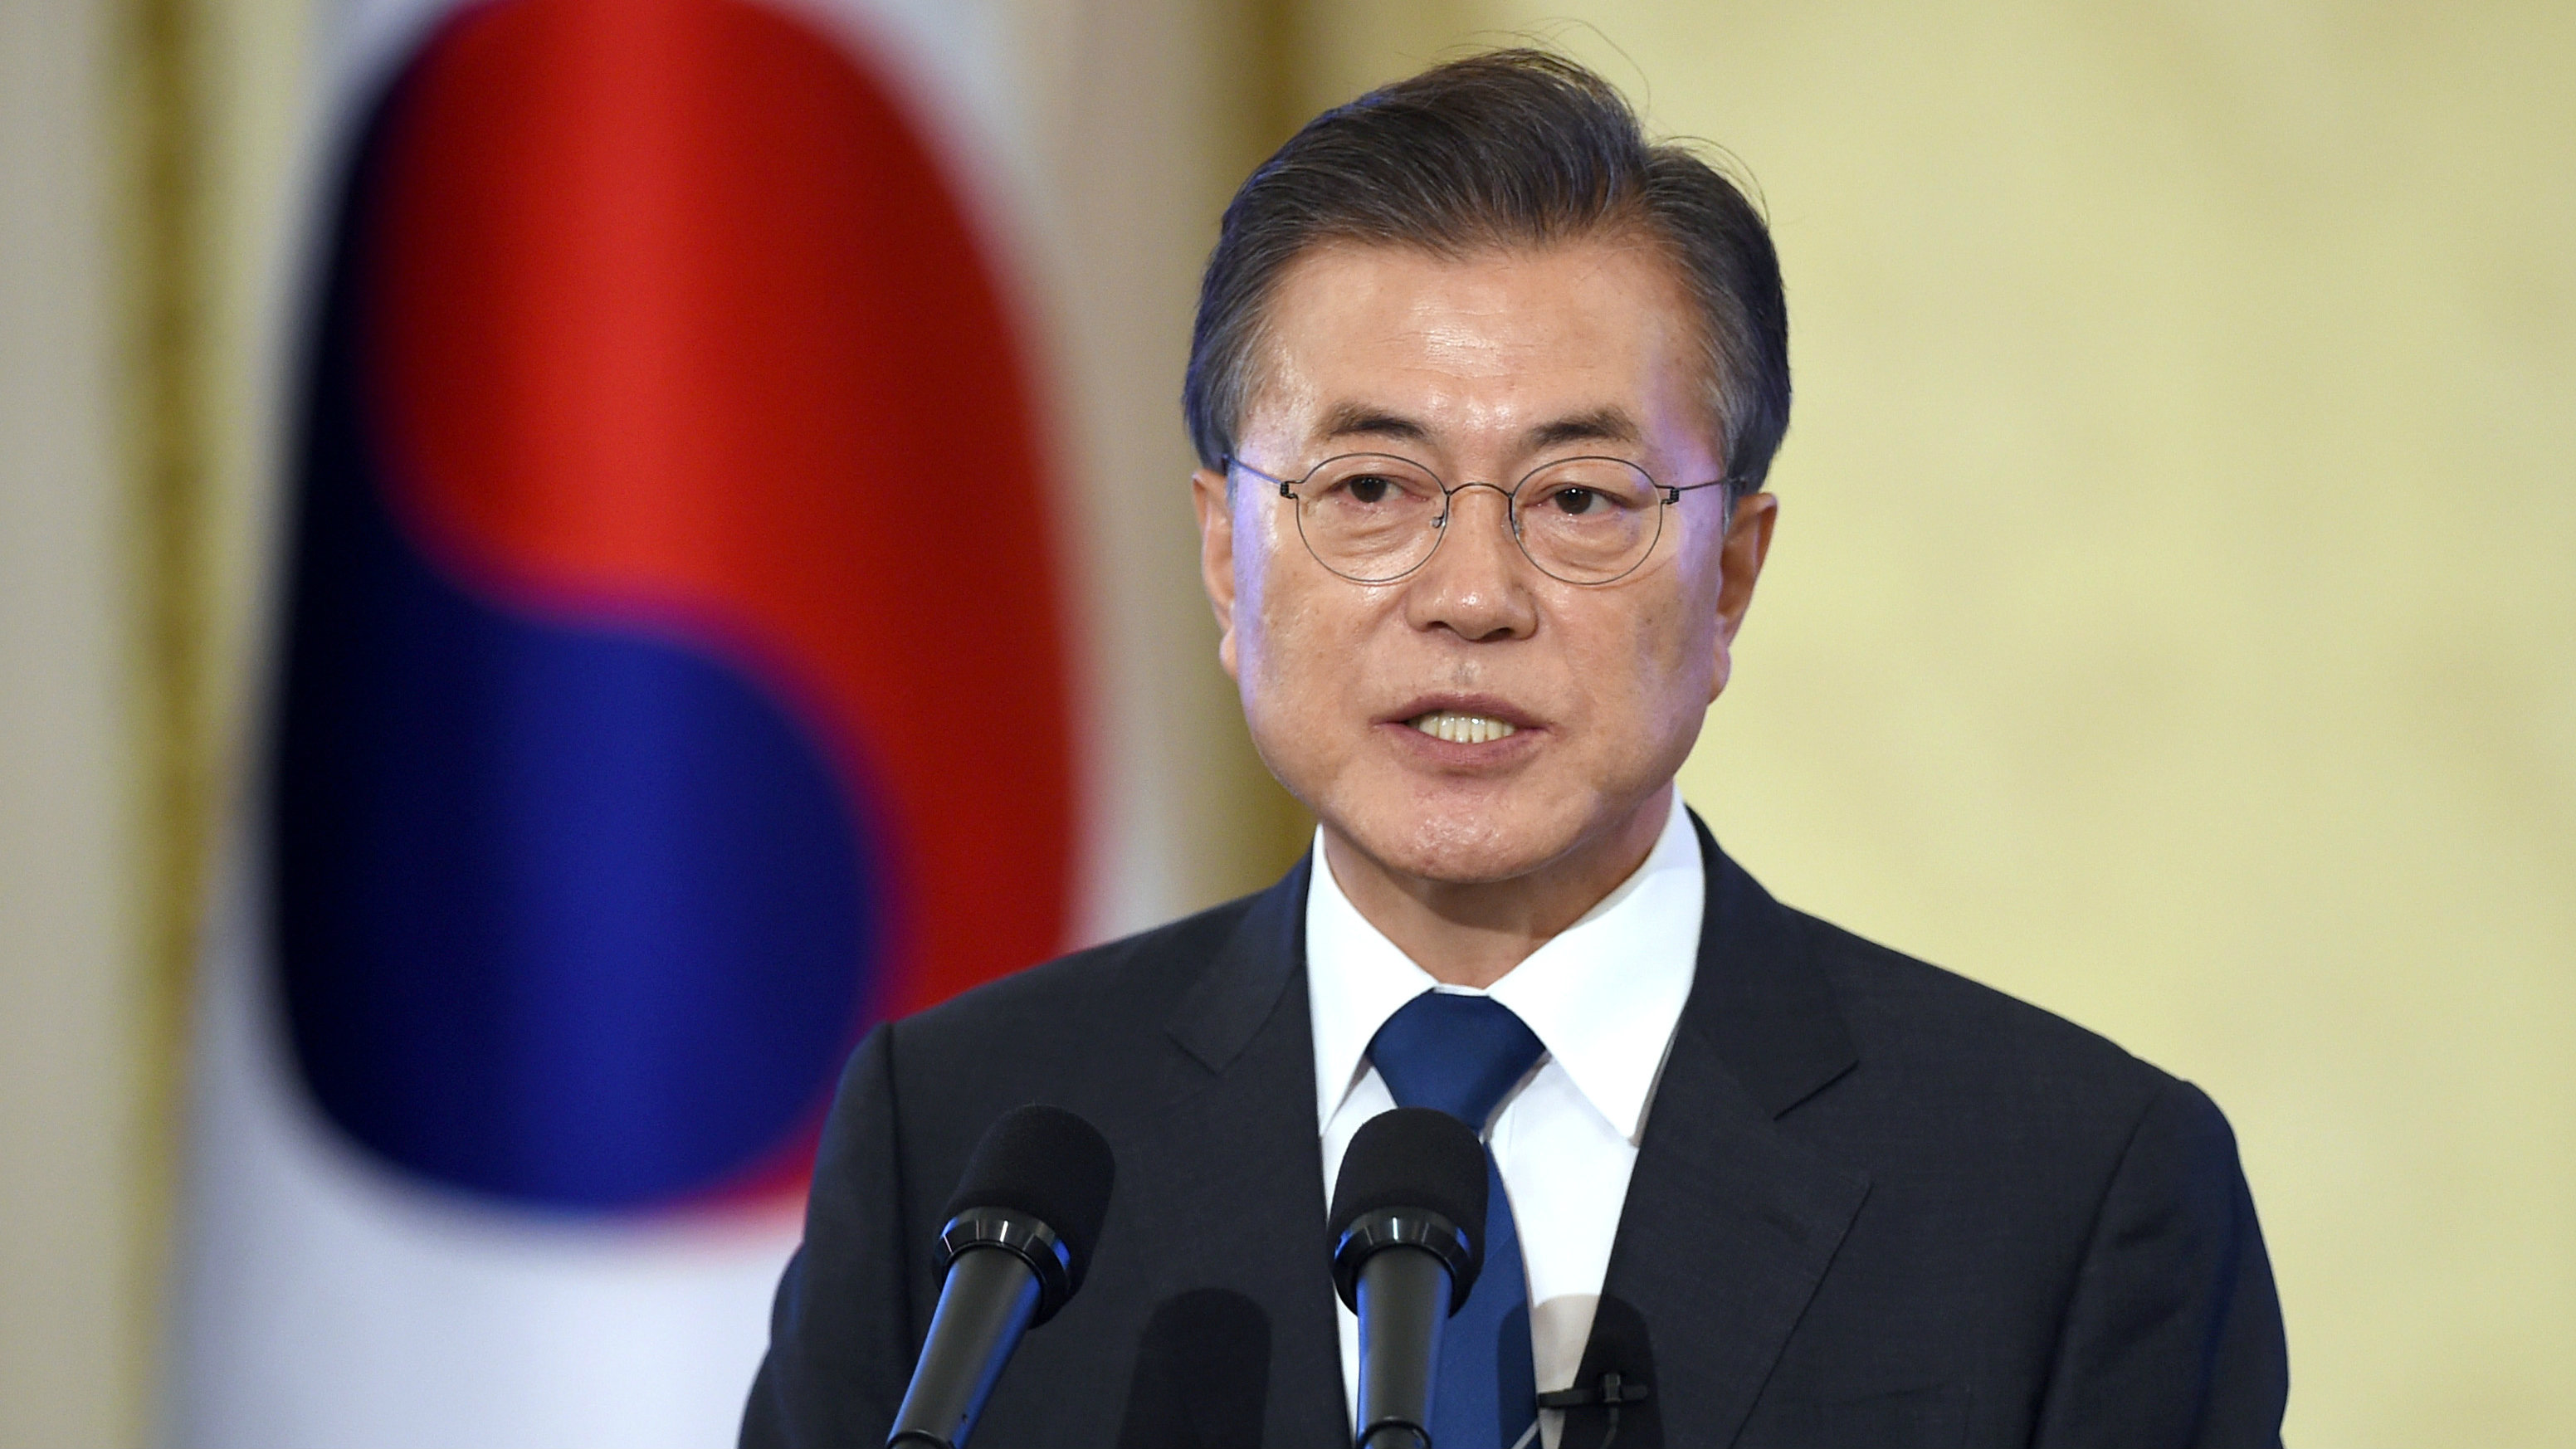 South Korean President Moon Jae-In speaks during a press conference marking his first 100 days in office at the presidential house in Seoul on August 17, 2017.